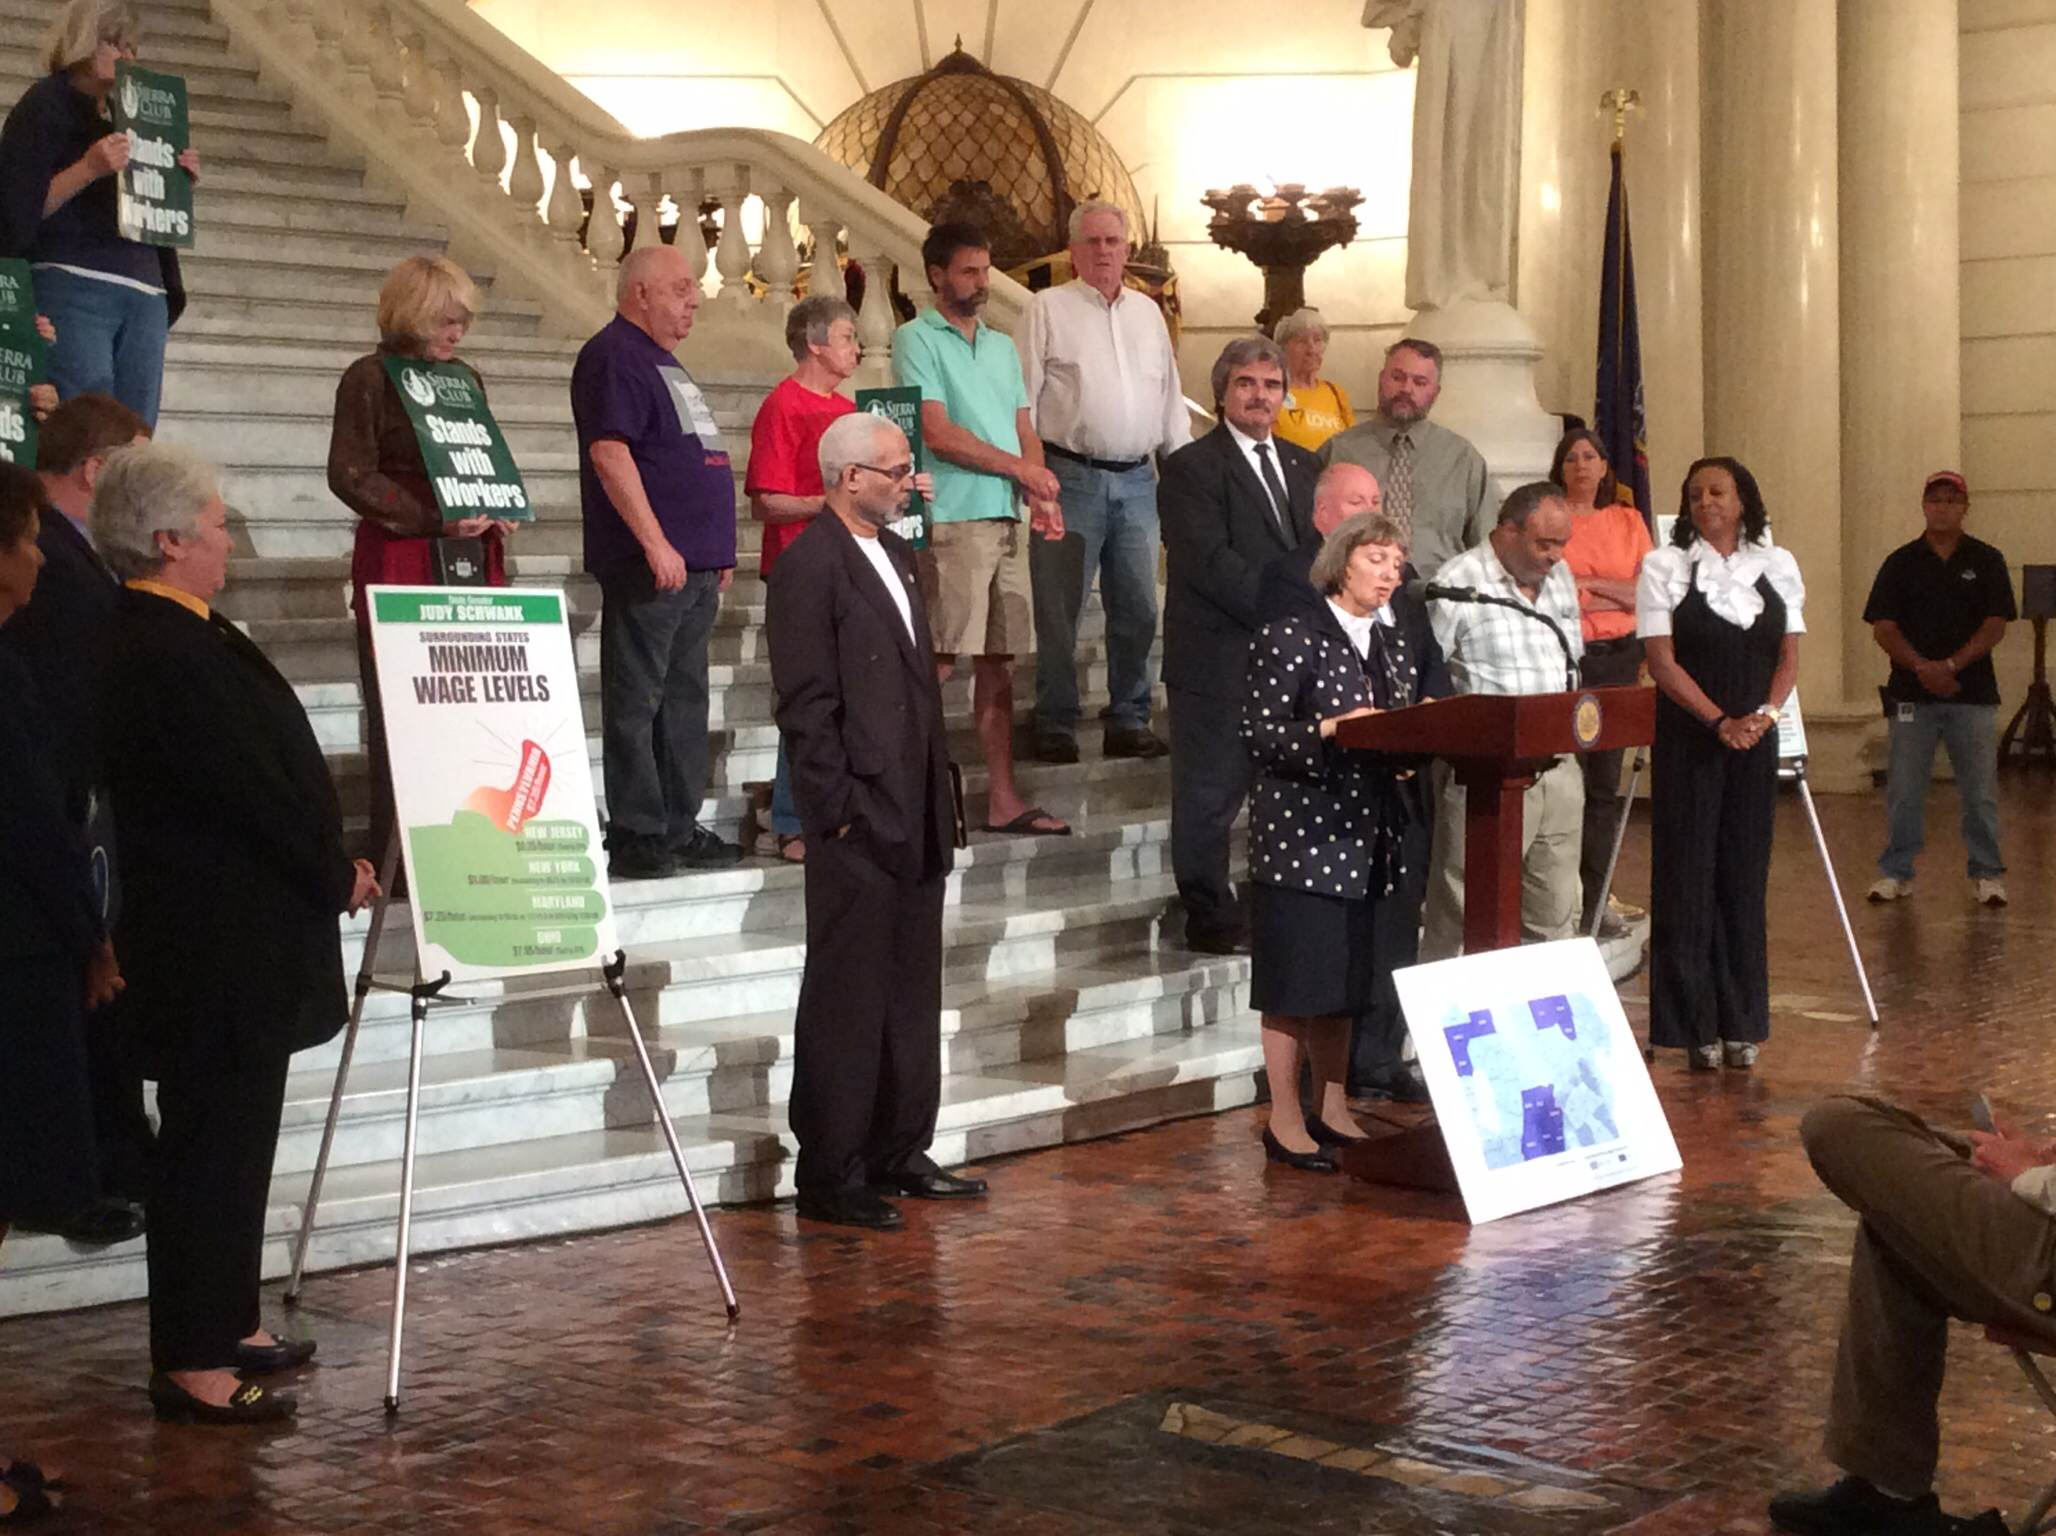 Sandy Strauss, of the PA Council of Churches, speaks in Harrisburg.